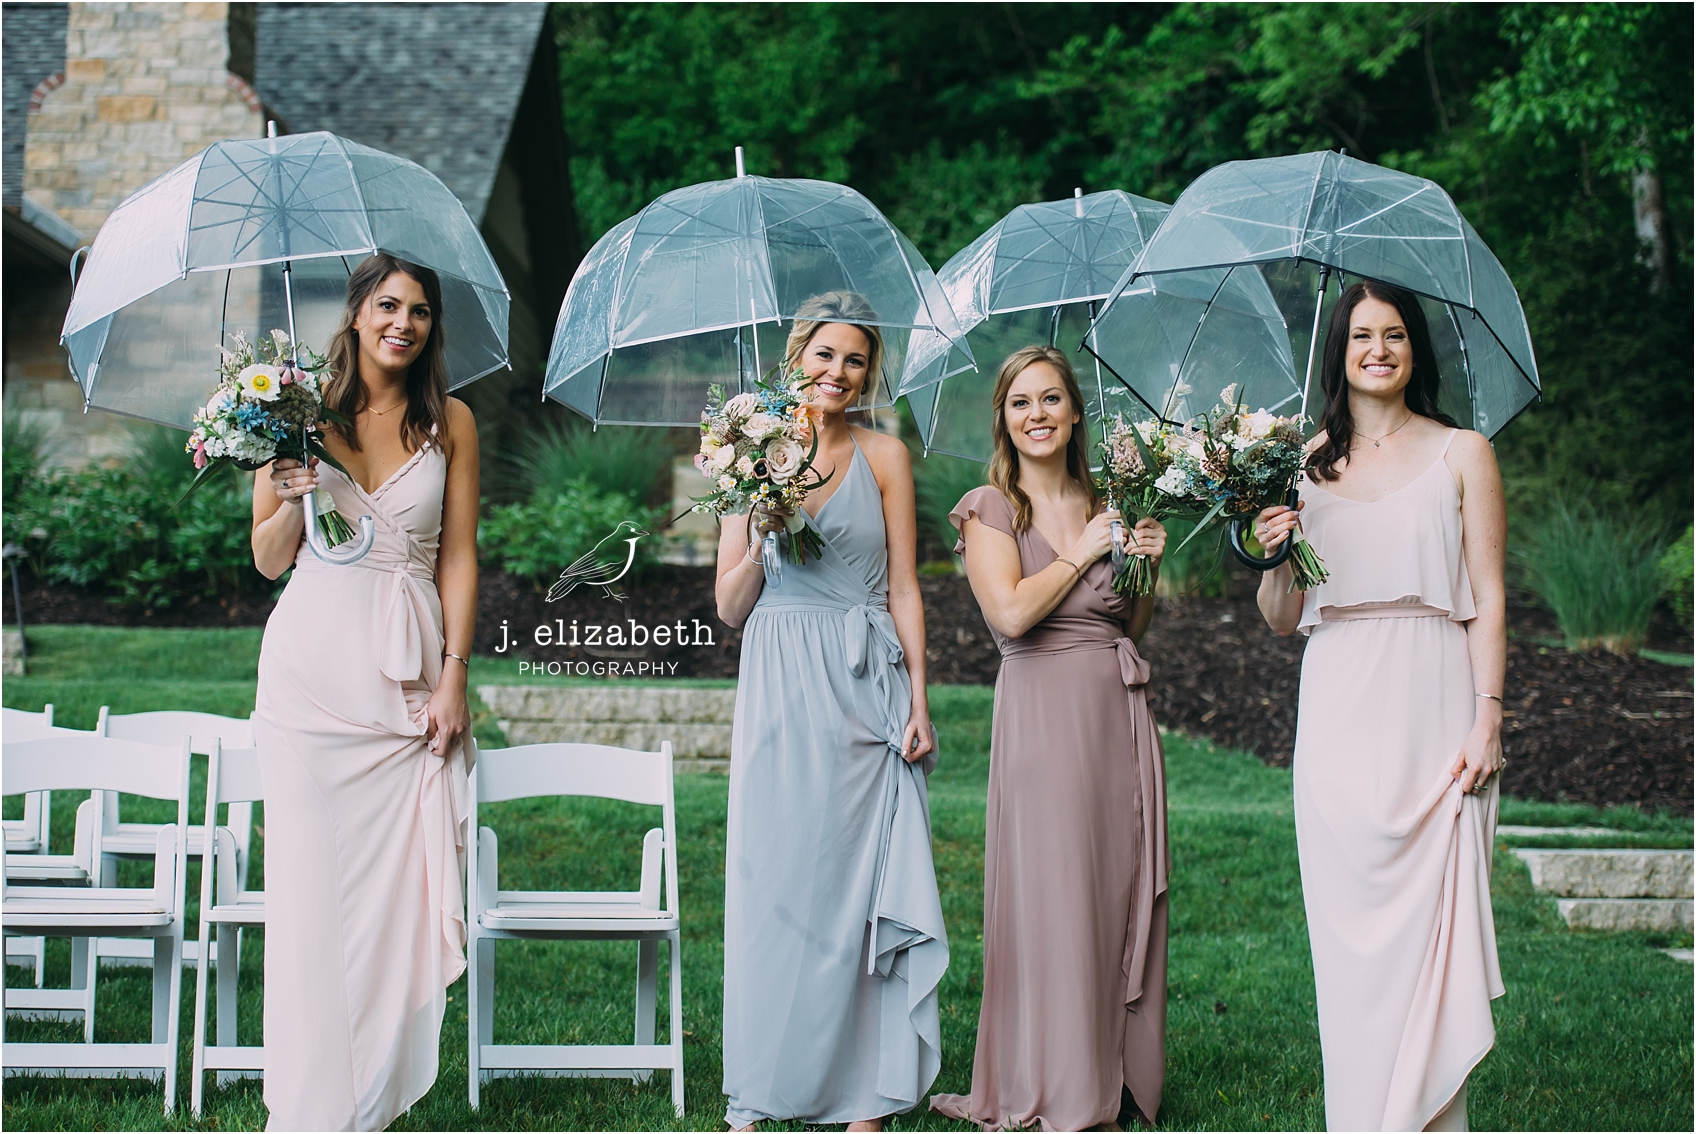 style altard bridesmaids umbrellas